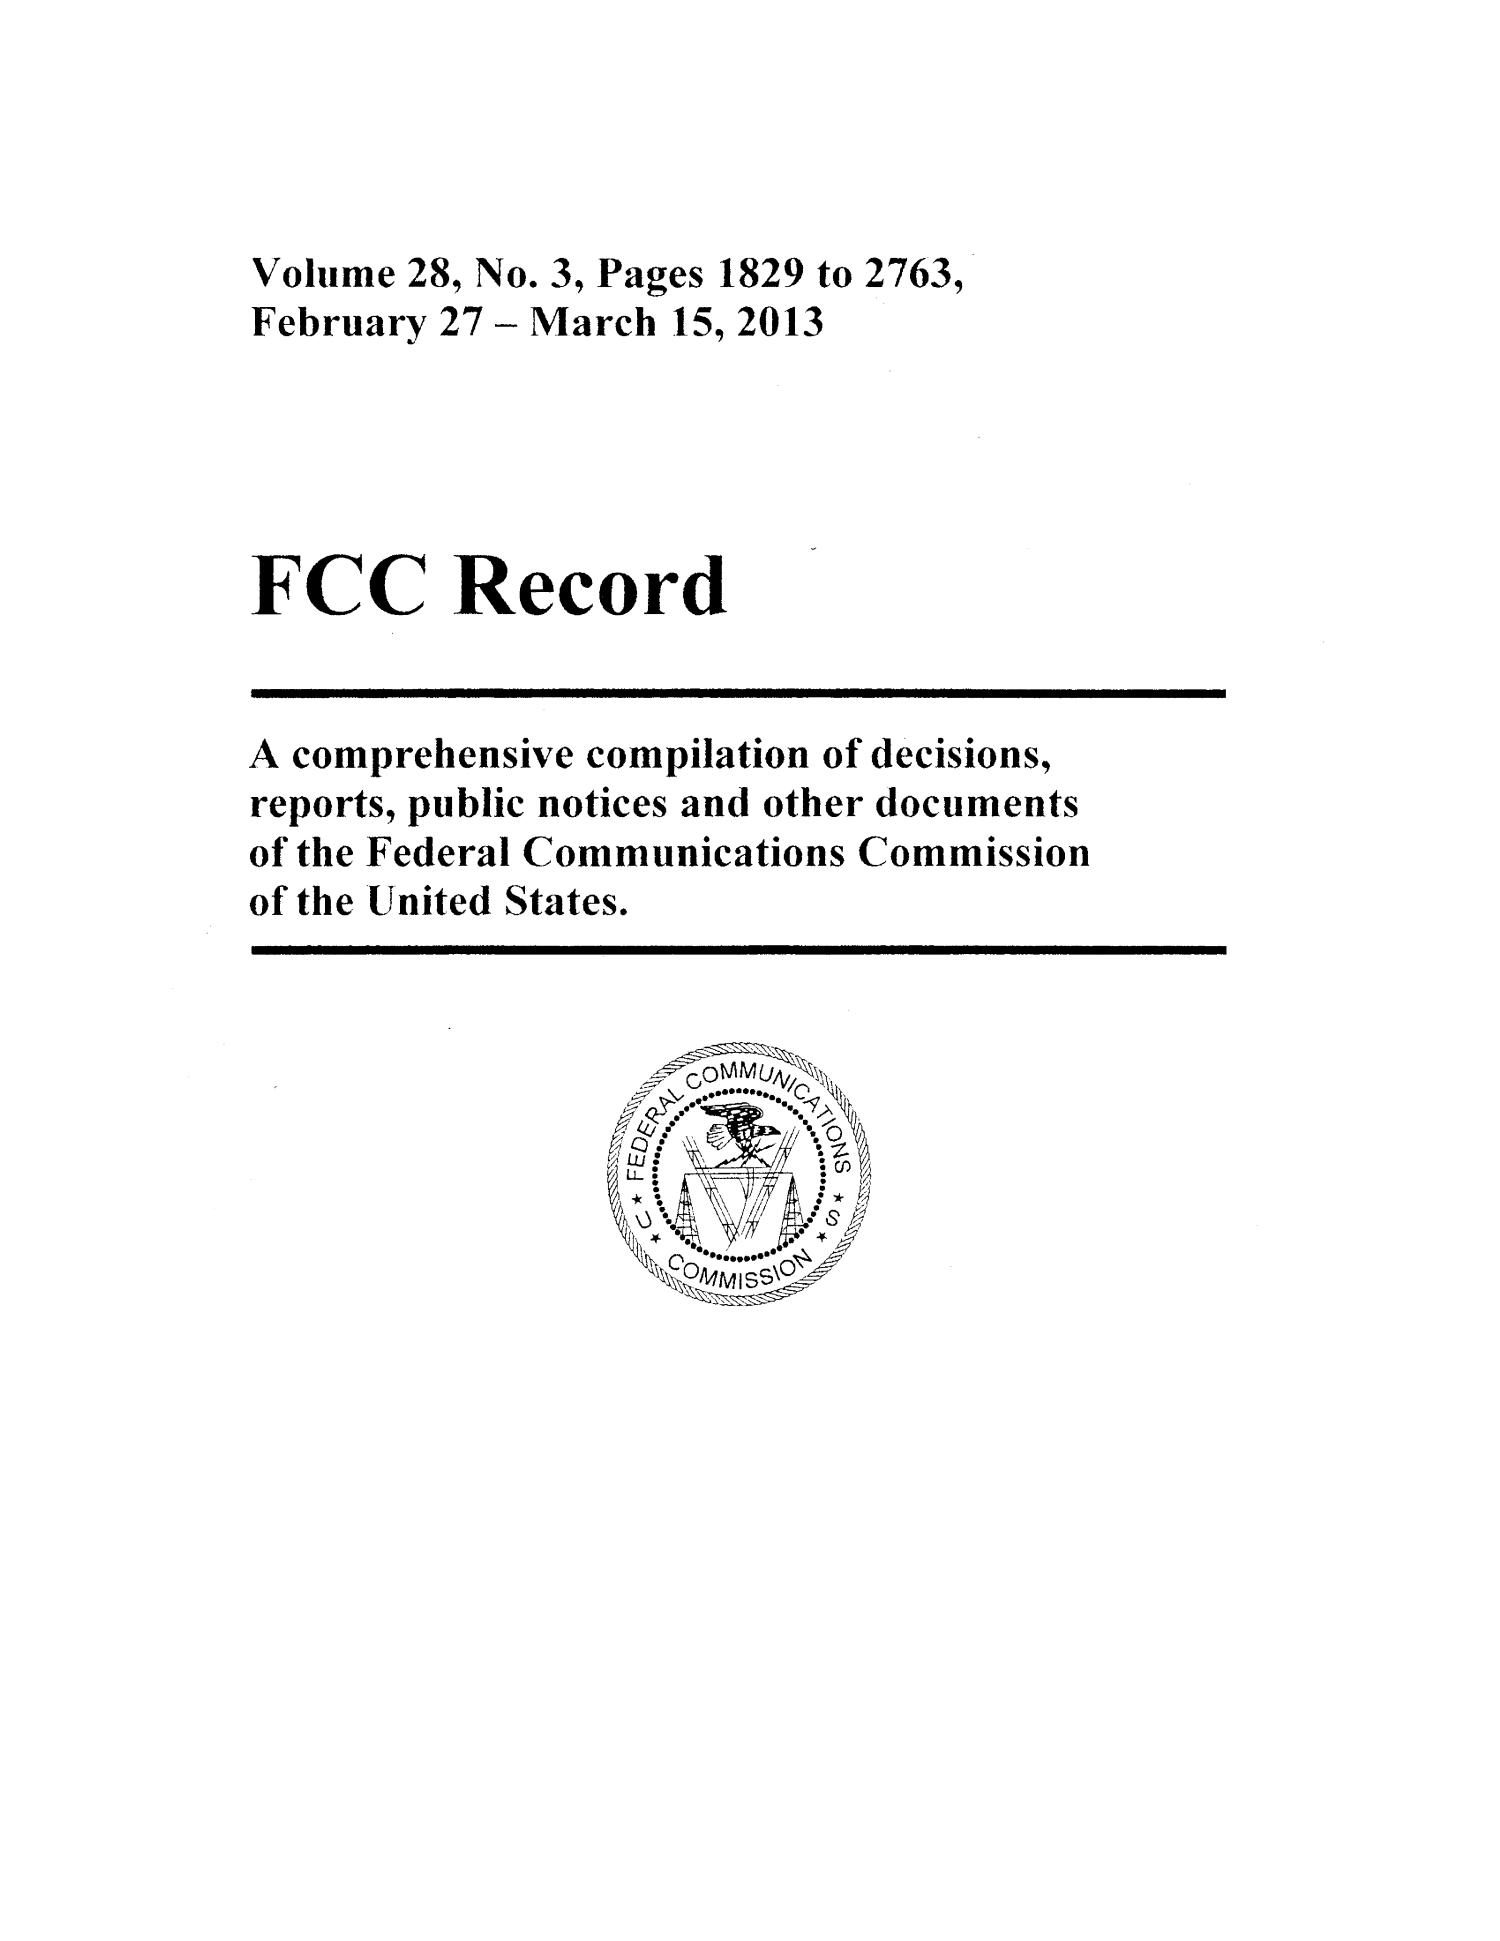 FCC Record, Volume 28, No. 3, Pages 1829 to 2763, February 27 - March 15, 2013                                                                                                      Title Page